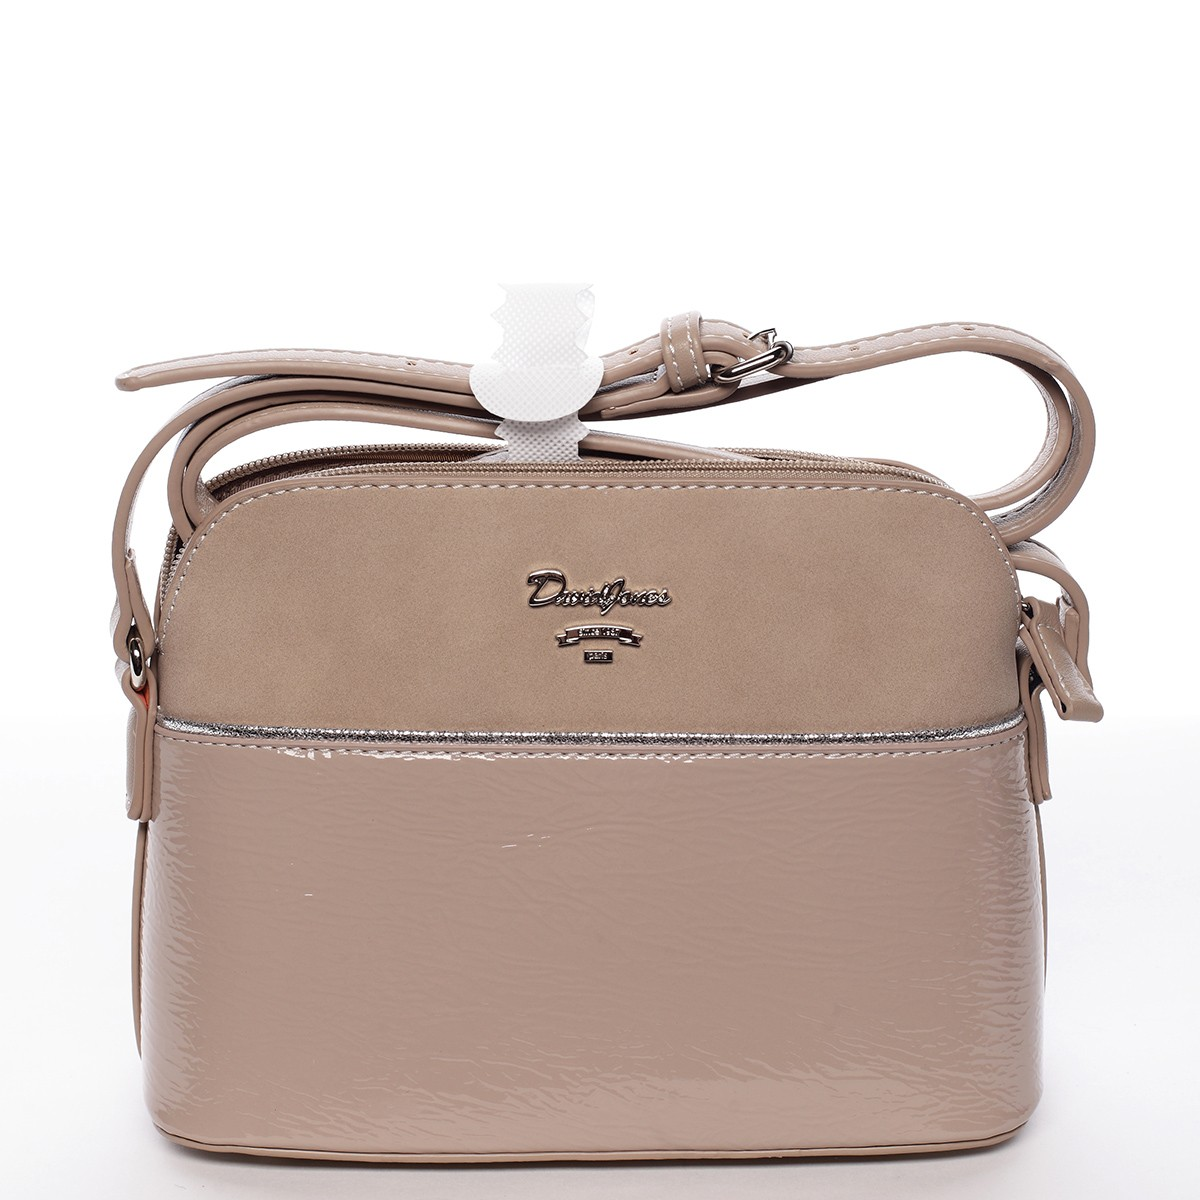 Dámska kabelka crossbody David Jones Kelly - camel